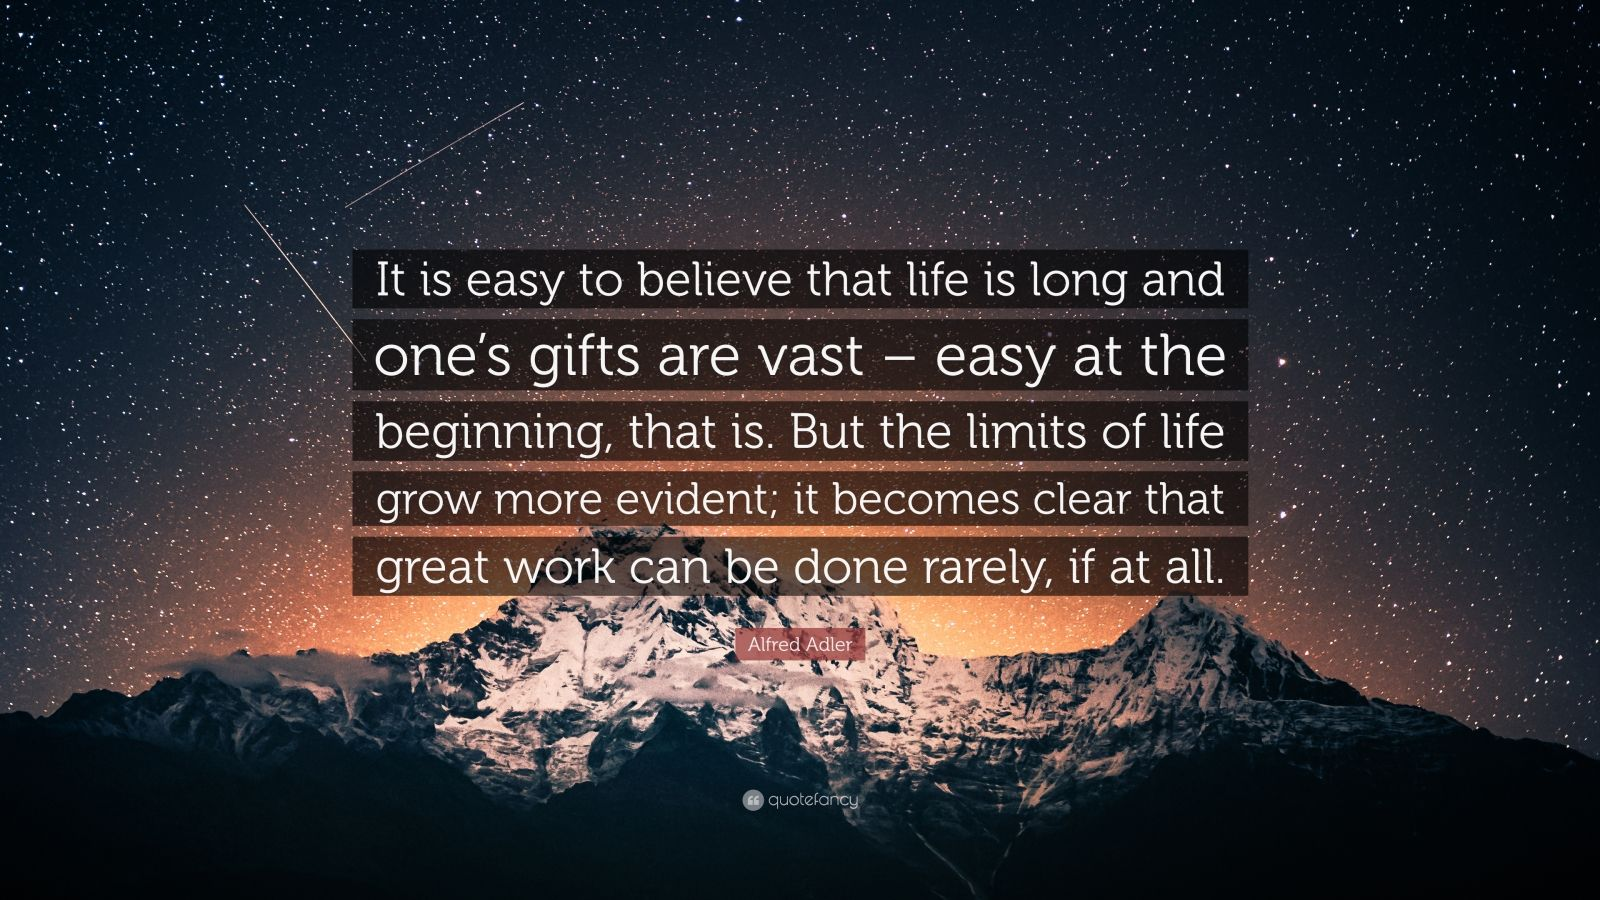 """Alfred Adler Quote: """"It is easy to believe that life is long and one's gifts are vast – easy at the beginning, that is. But the limits of life grow more evident; it becomes clear that great work can be done rarely, if at all."""""""